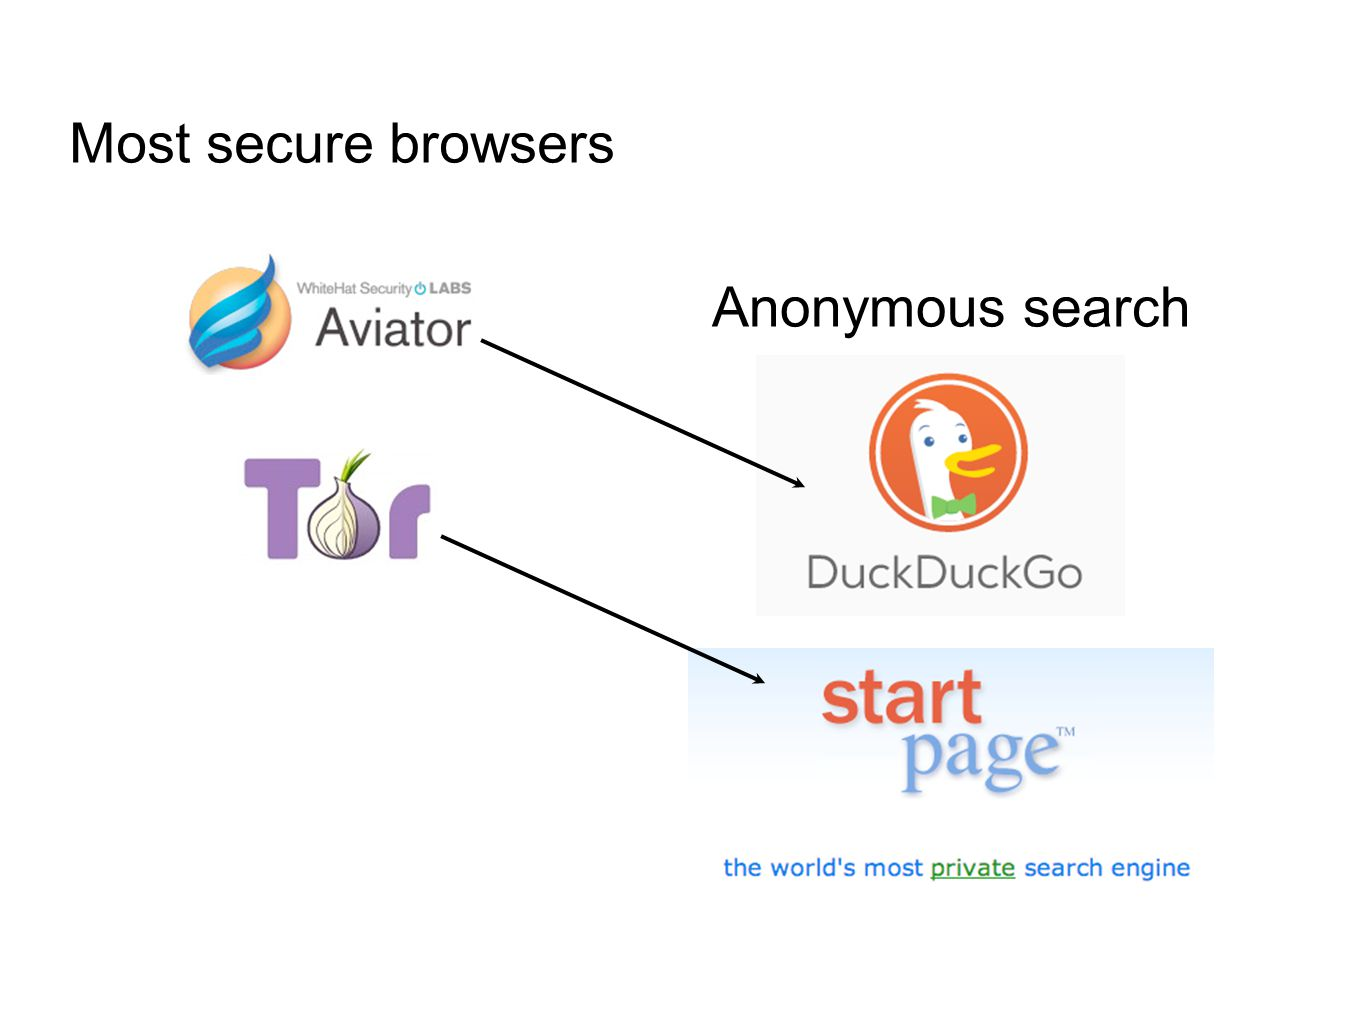 How to secure your Web browser - Current browser patches and updates - Block third party cookies - privacy settings - Enable content filters - Addblock plus - Enable pop up blockers - Addblock plus - Valuable extensions: - HTTPS everywhere - EFF - Privacy Badger - EFF - Disconnect - Ghostery - Referer Control - DoNotTrackMe - email assistance